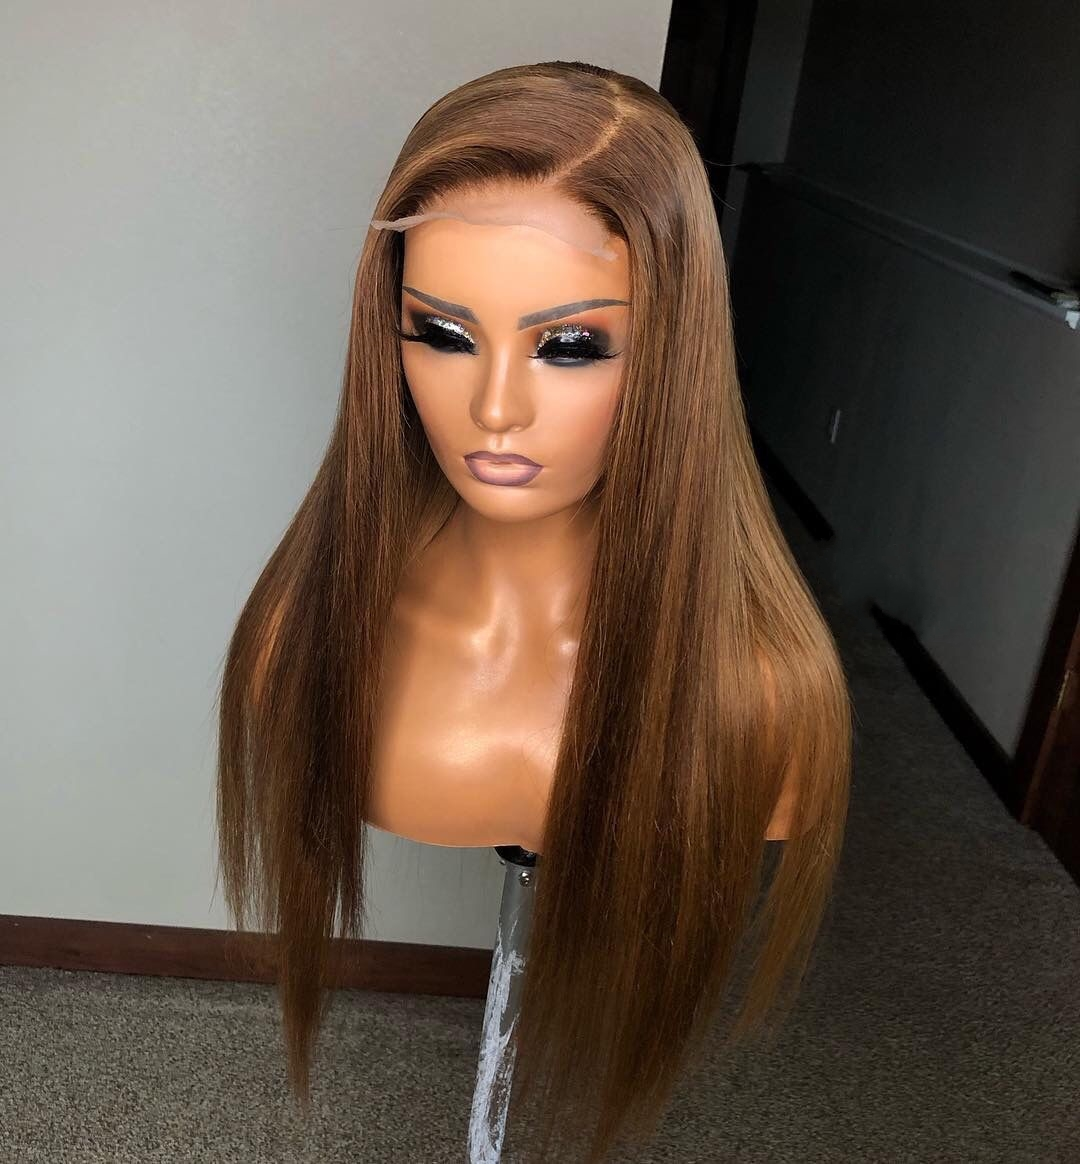 H923ce167fc7b4659be8ef1fd8dde14b90 13x6 Lace Front Human Hair Wigs Pre Plucked Brazilian Remy With Baby Hair Straight Highlight Ombre Wigs Dream Beauty